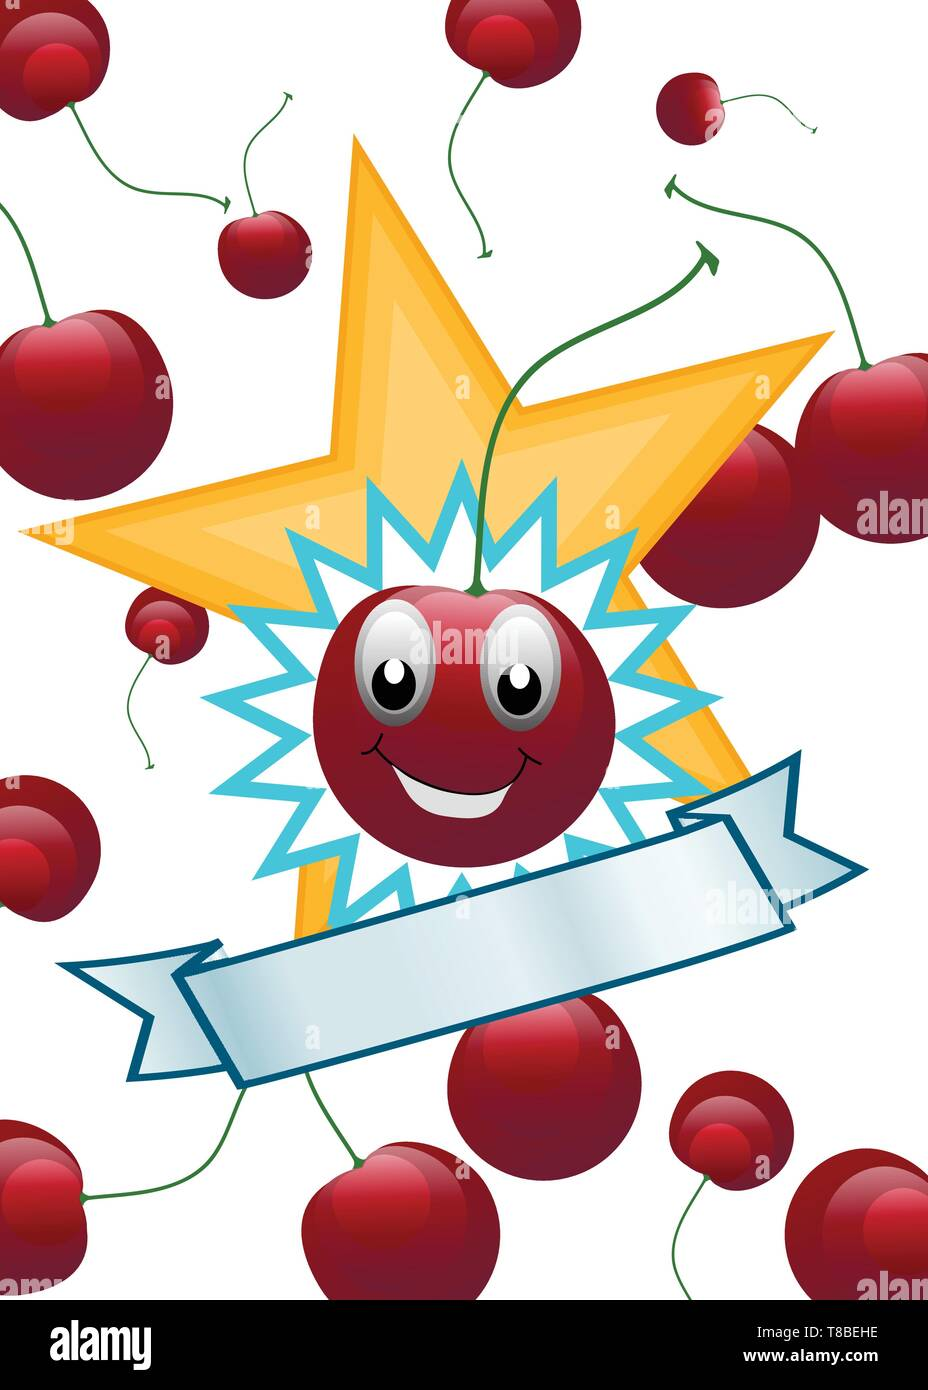 Smiling Cherry with Copy-space. Appropriate for educational and food industries - Stock Vector